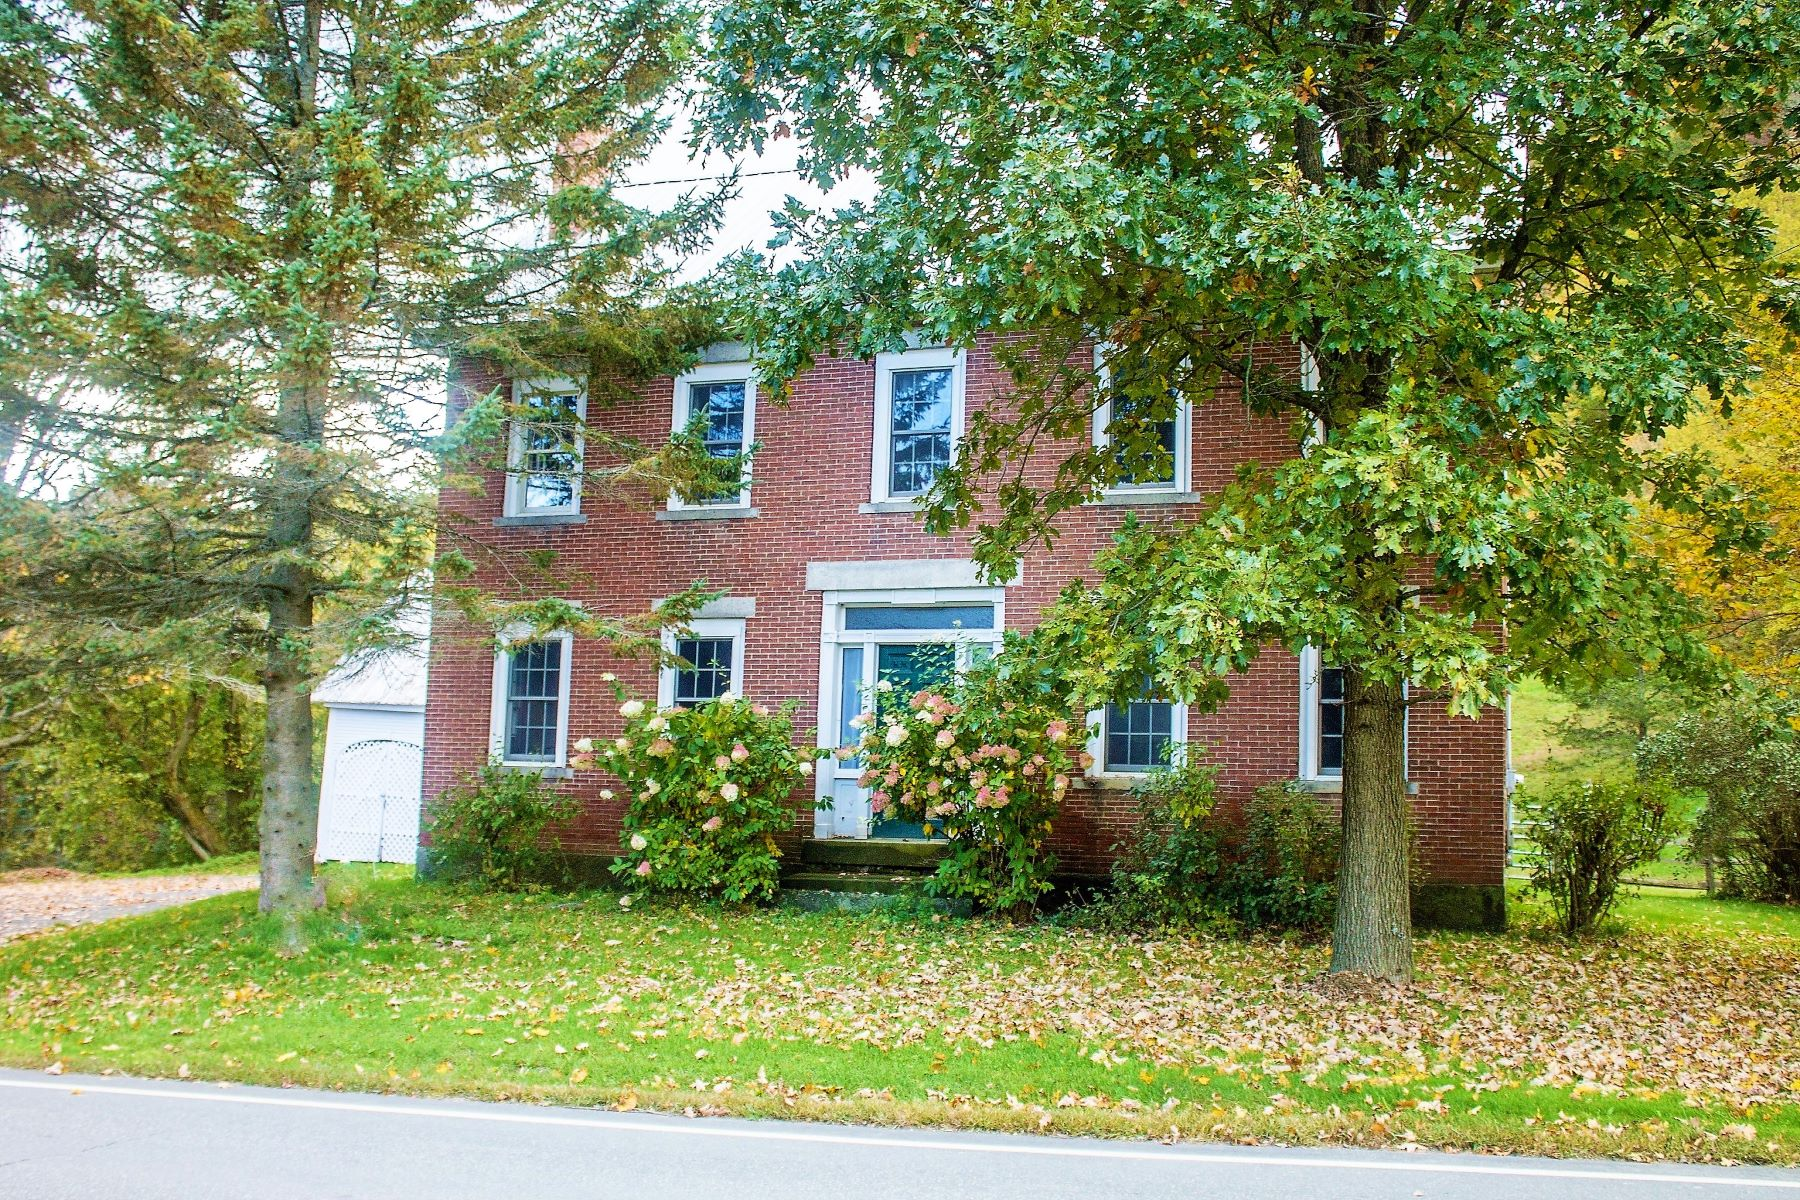 Single Family Homes for Sale at 1267 Vt Route 14 North, Randolph 1267 Vt Route 14 North Randolph, Vermont 05041 United States